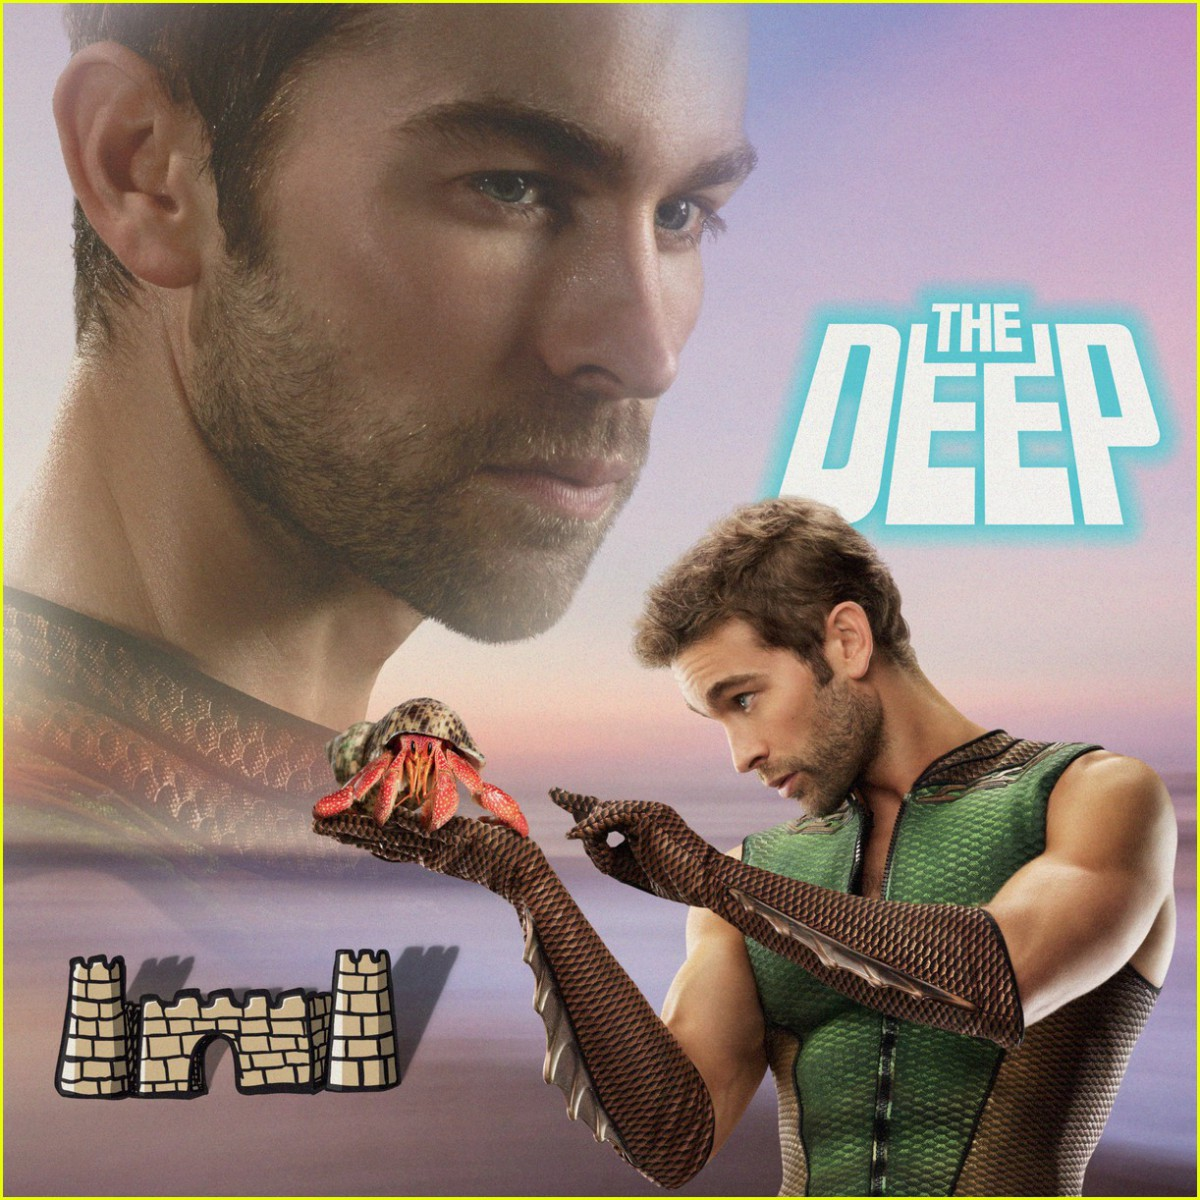 The Deep Calendar - May 2020 (featuring Chace Crawford from The Boys)